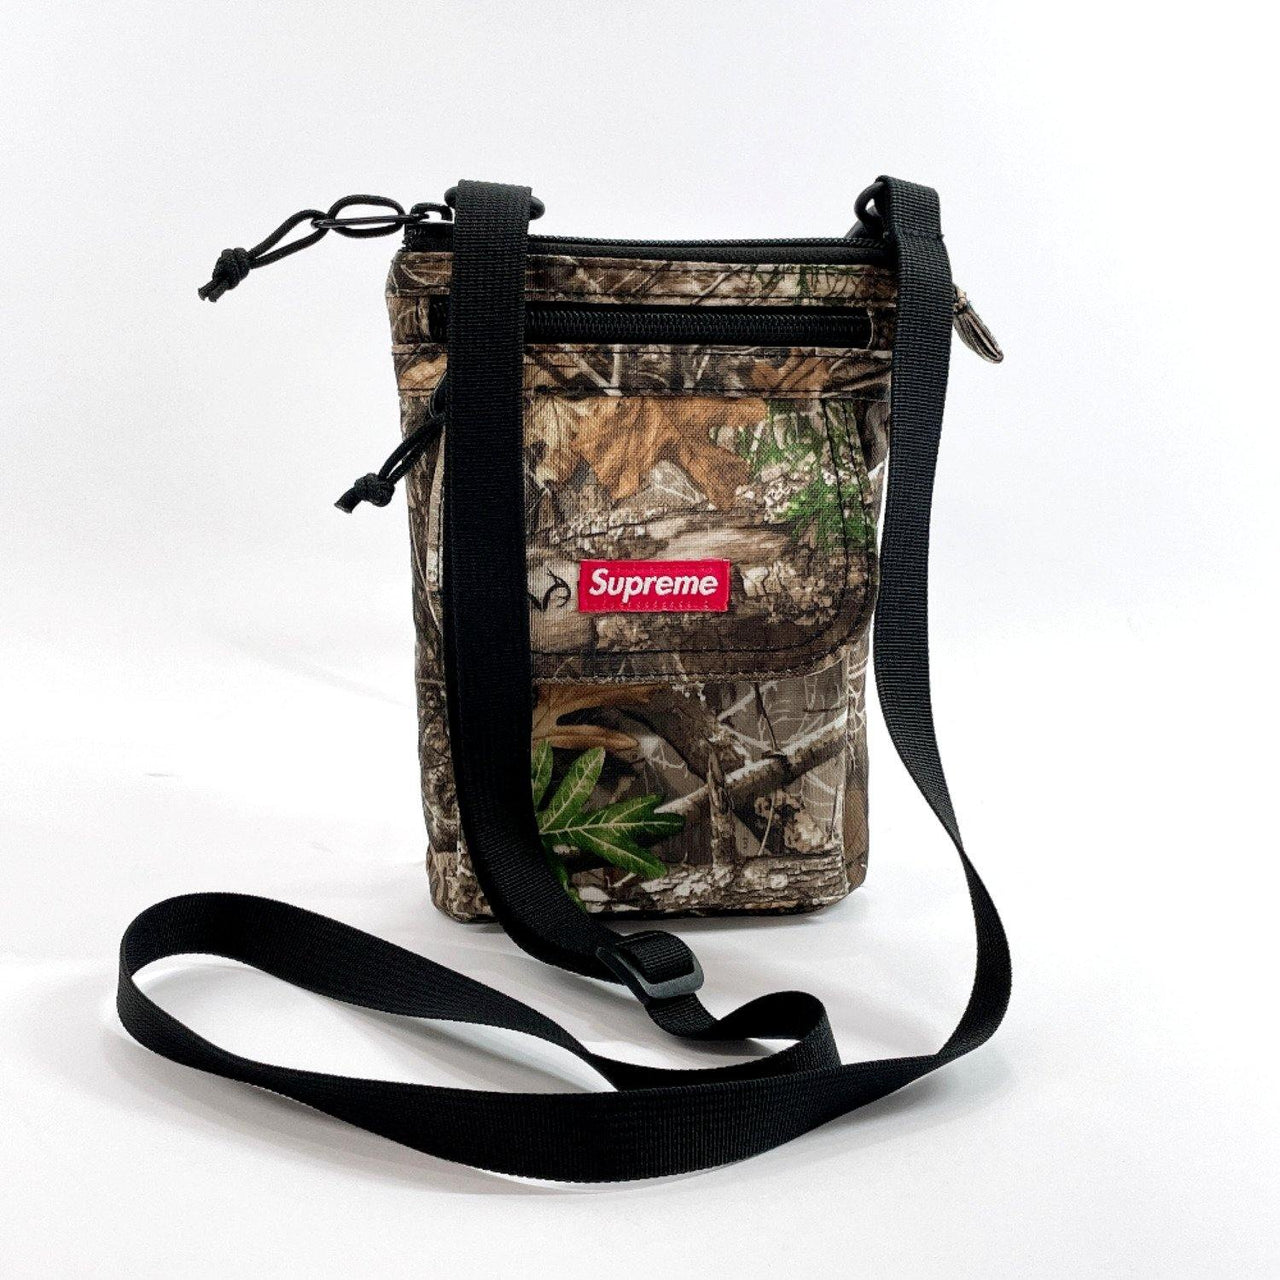 Supreme Shoulder Bag Sakosh pouch Camouflage cordura Nylon green mens Used - JP-BRANDS.com